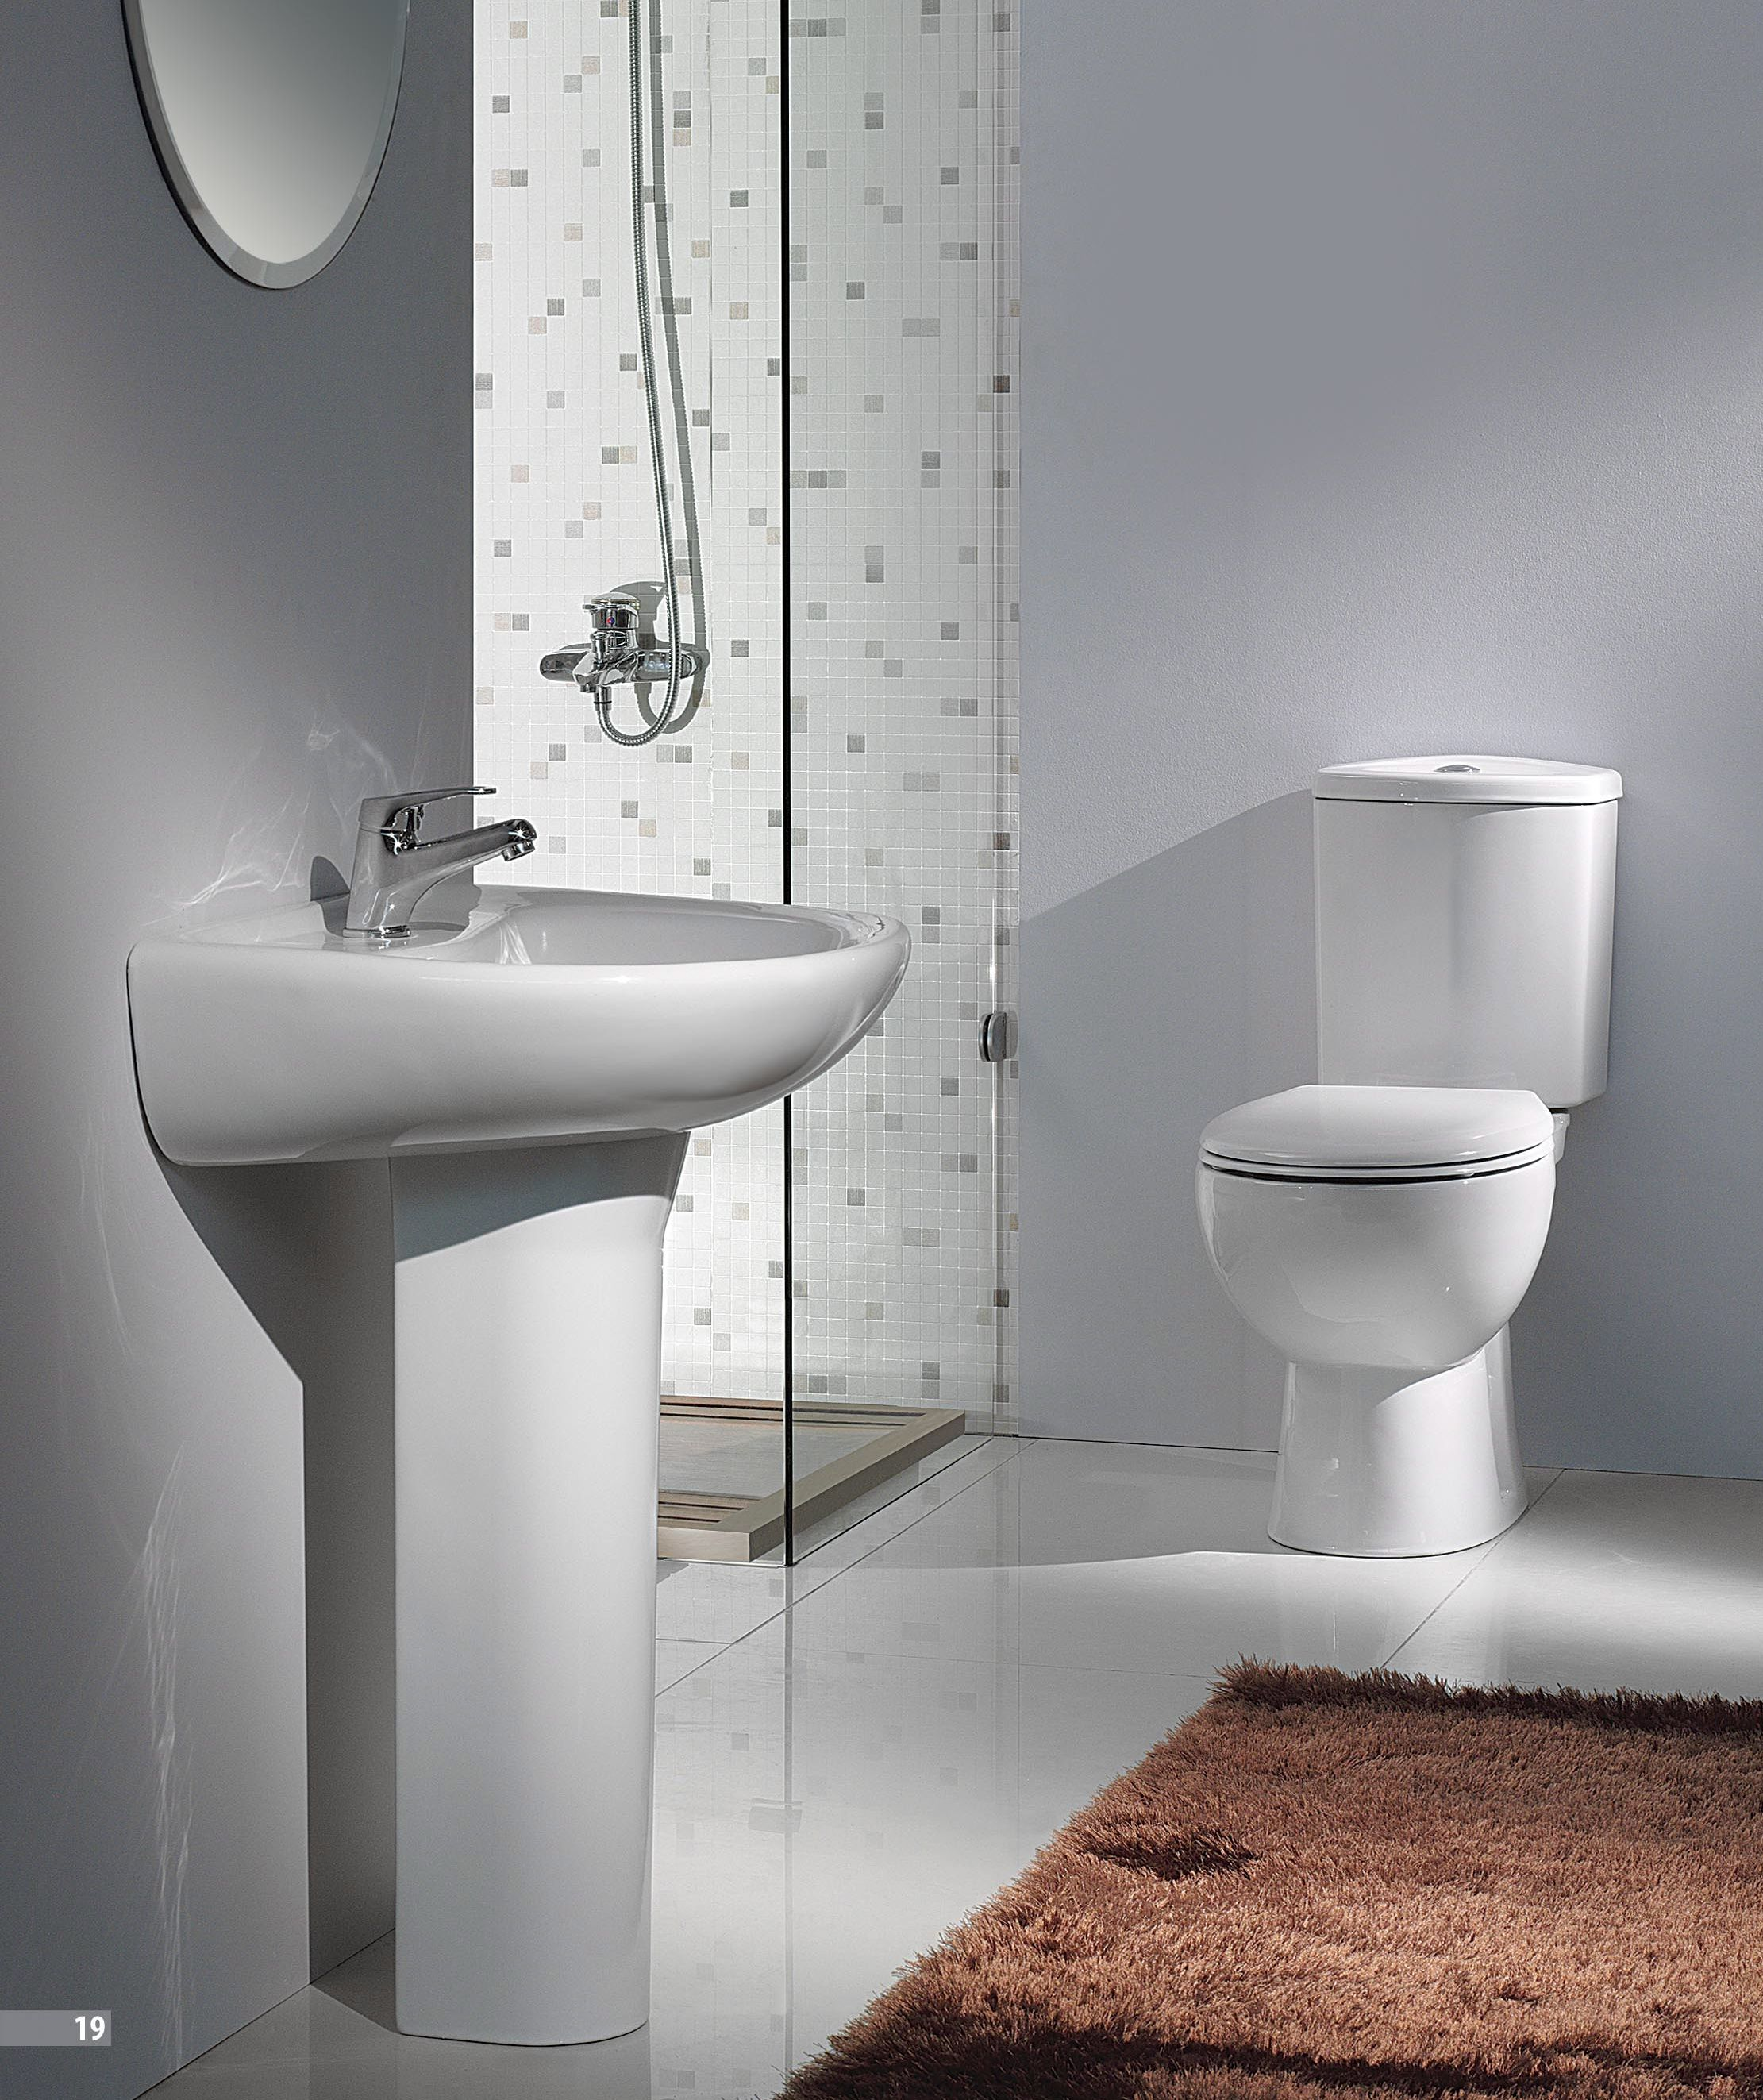 Beautiful Bathrooms Images With Contemporary Pedestal Sink And Brown Bathroom Rug Design For Bathroom Remodel Photos Best Bathroom Designs Brown Bathroom Rugs